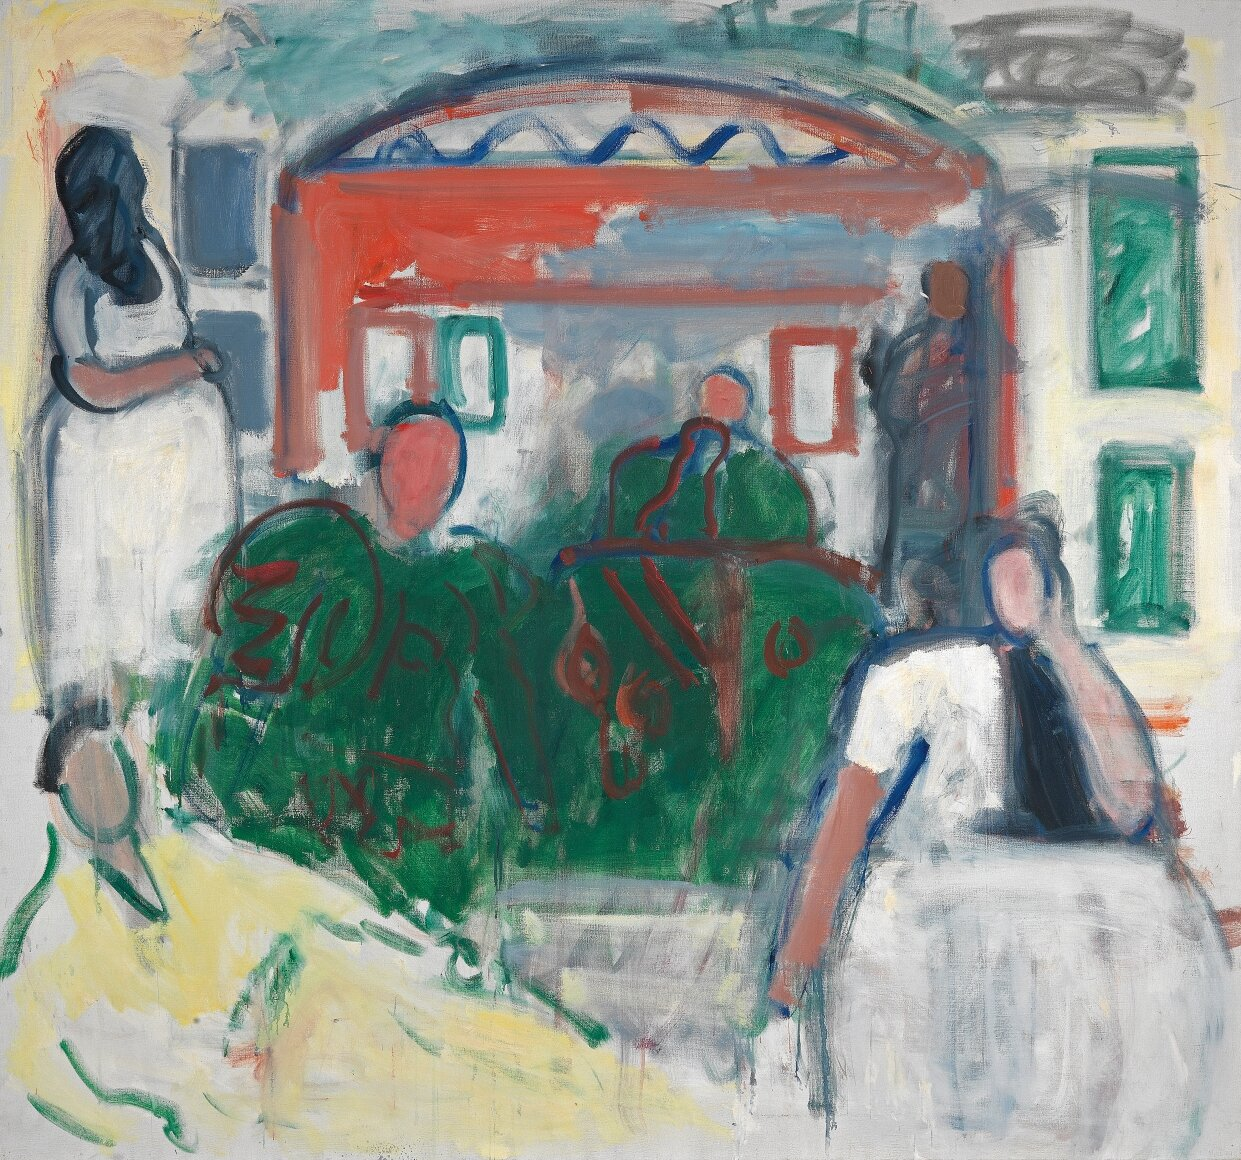 Moroccan Women,  1984, Oil on linen, 70 x 76 inches